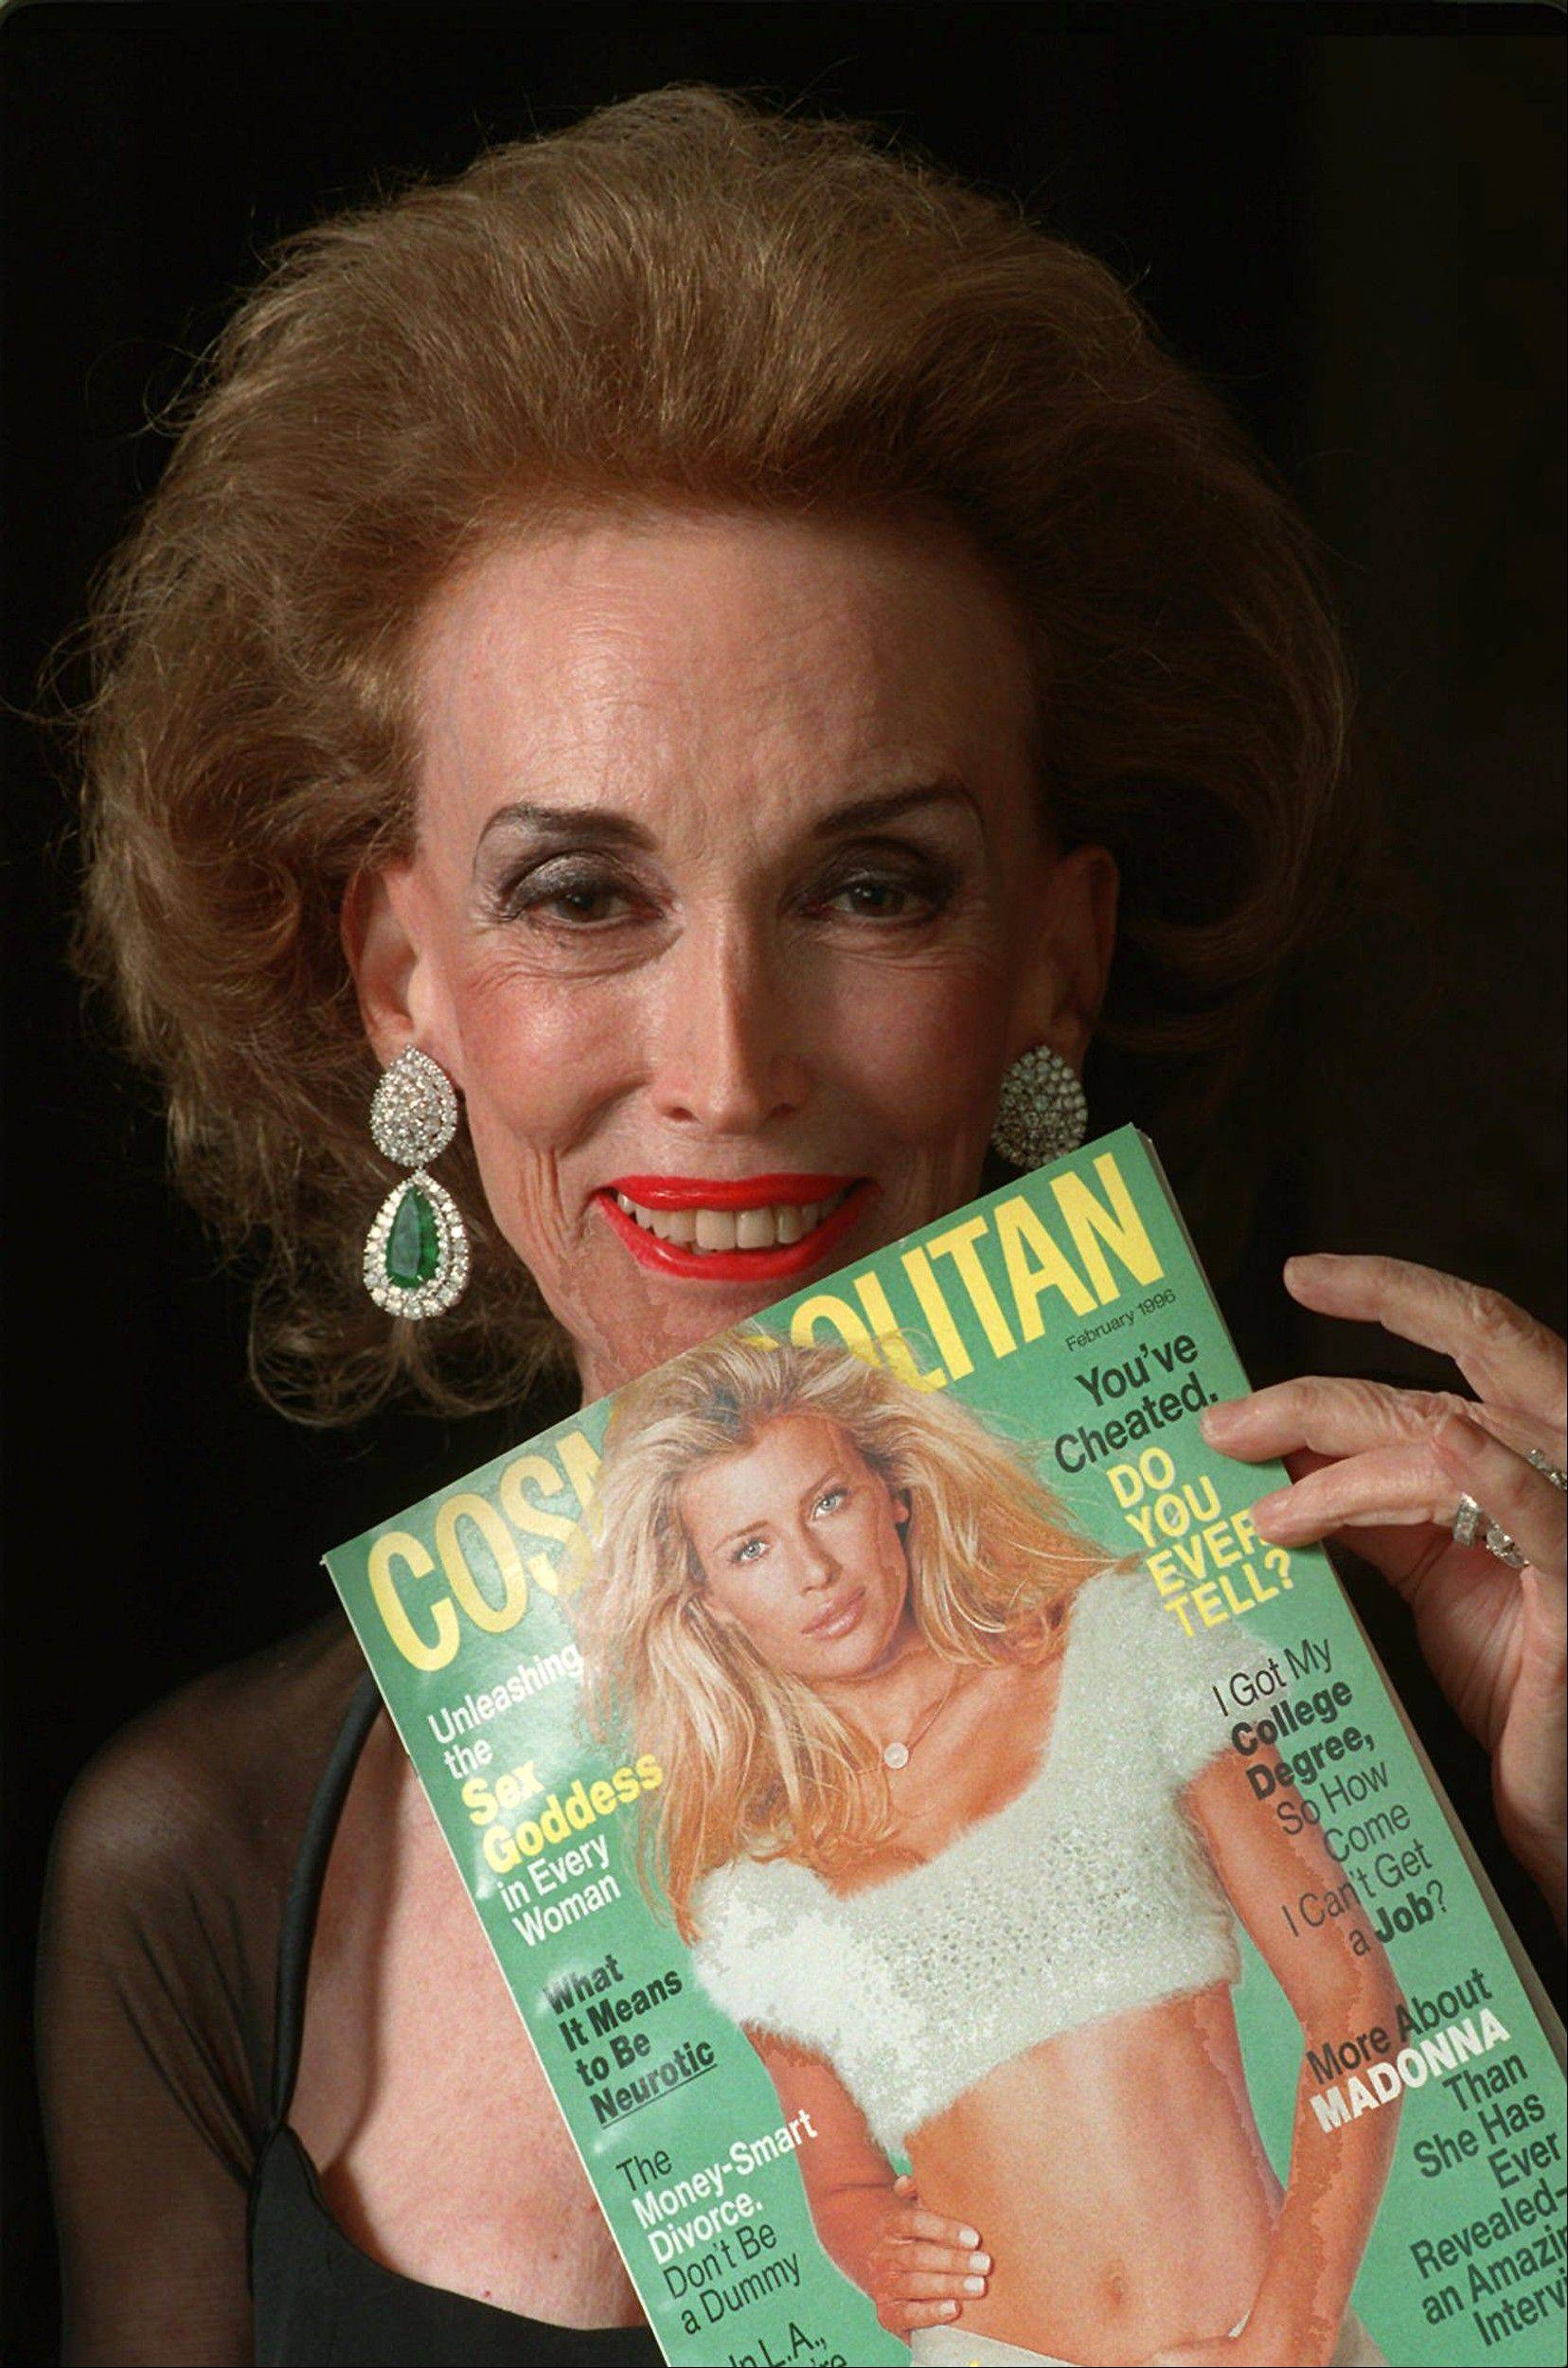 This Jan. 24, 1996 file photo shows Cosmopolitan Editor-in-Chief Helen Gurley Brown holding an issue of the magazine before a Waldorf-Astoria ceremony where she was honored with a Henry Johnson Fisher Award for lifetime achievement in the magazine industry in New York. Brown, longtime editor of Cosmopolitan magazine, died Monday, Aug. 13, 2012 at a hospital in New York after a brief hospitalization. She was 90.